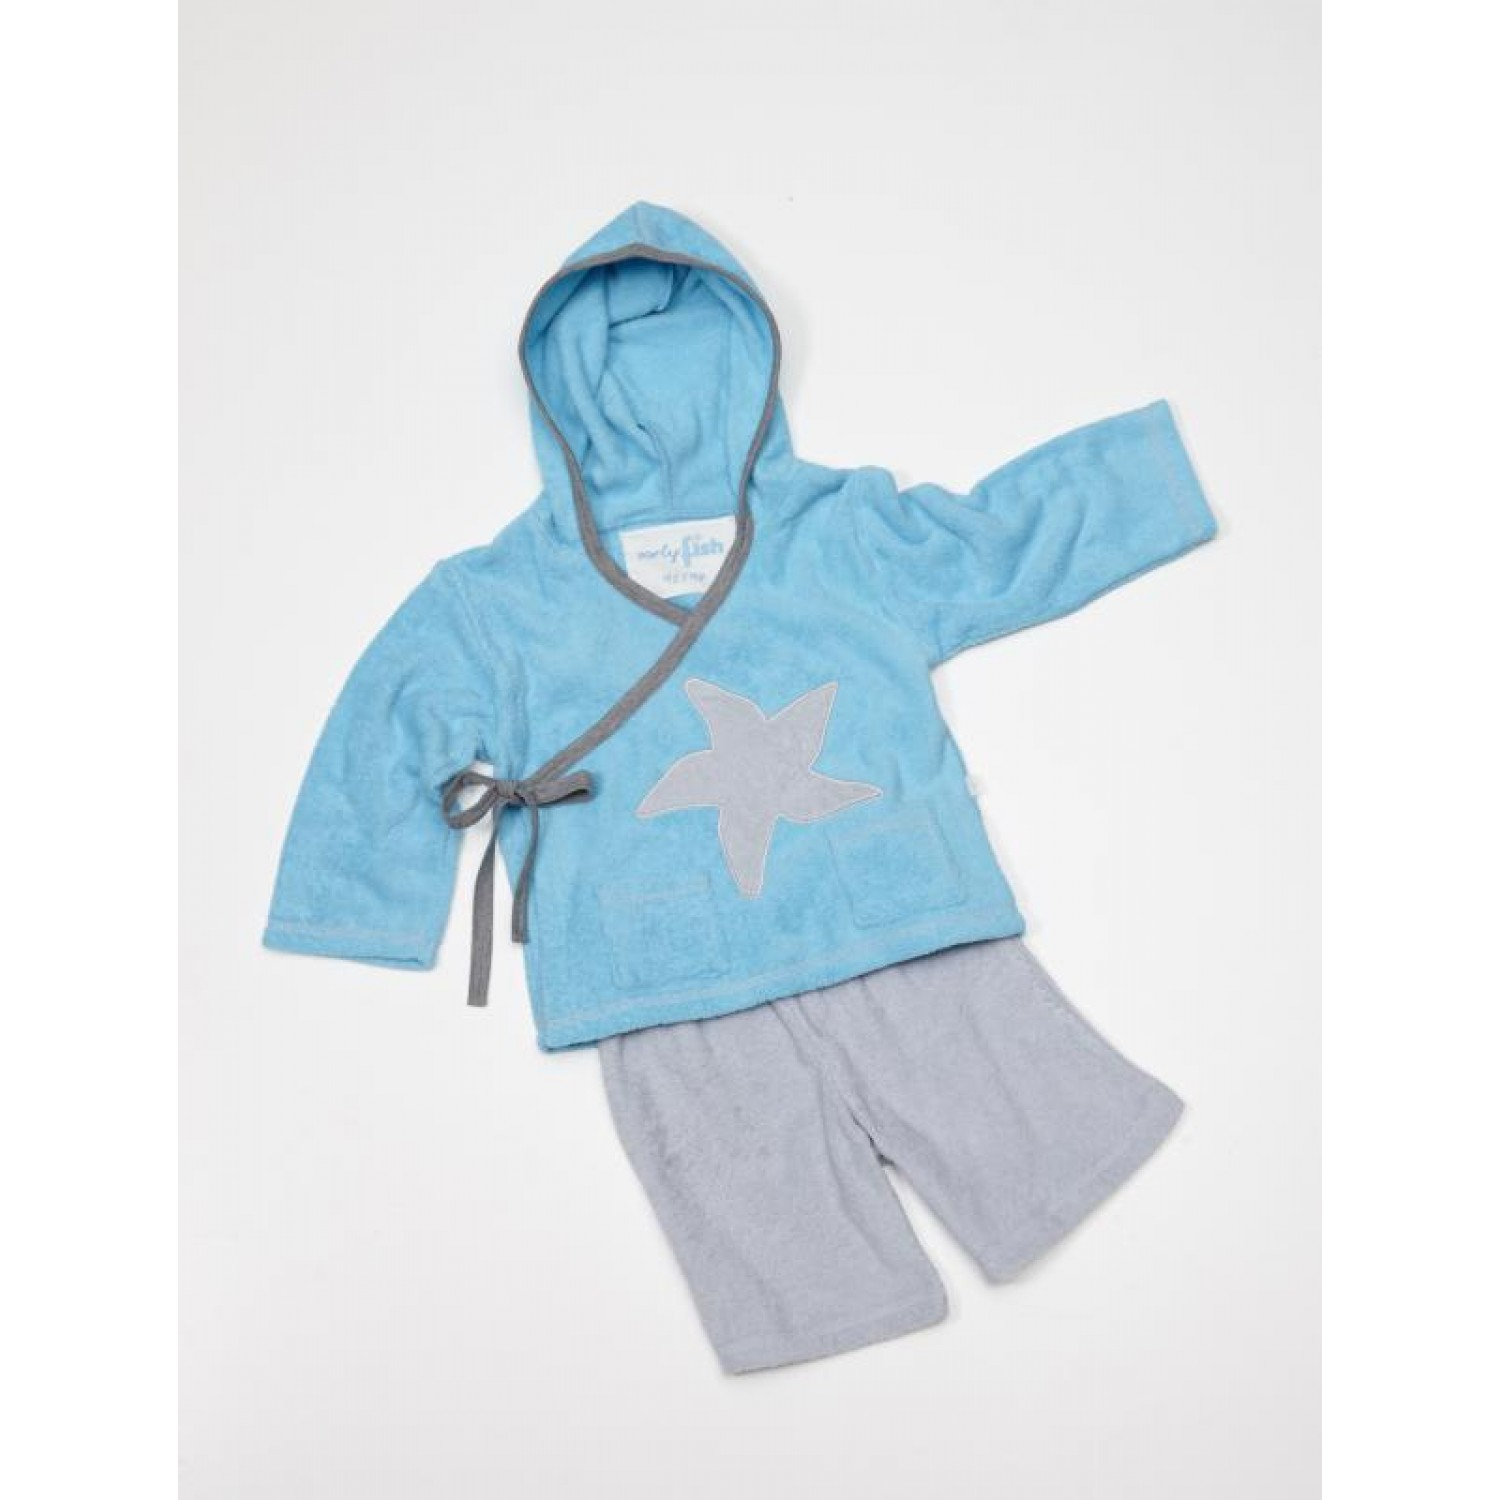 Wrap Top with Hood & Shorts for children, Organic Cotton